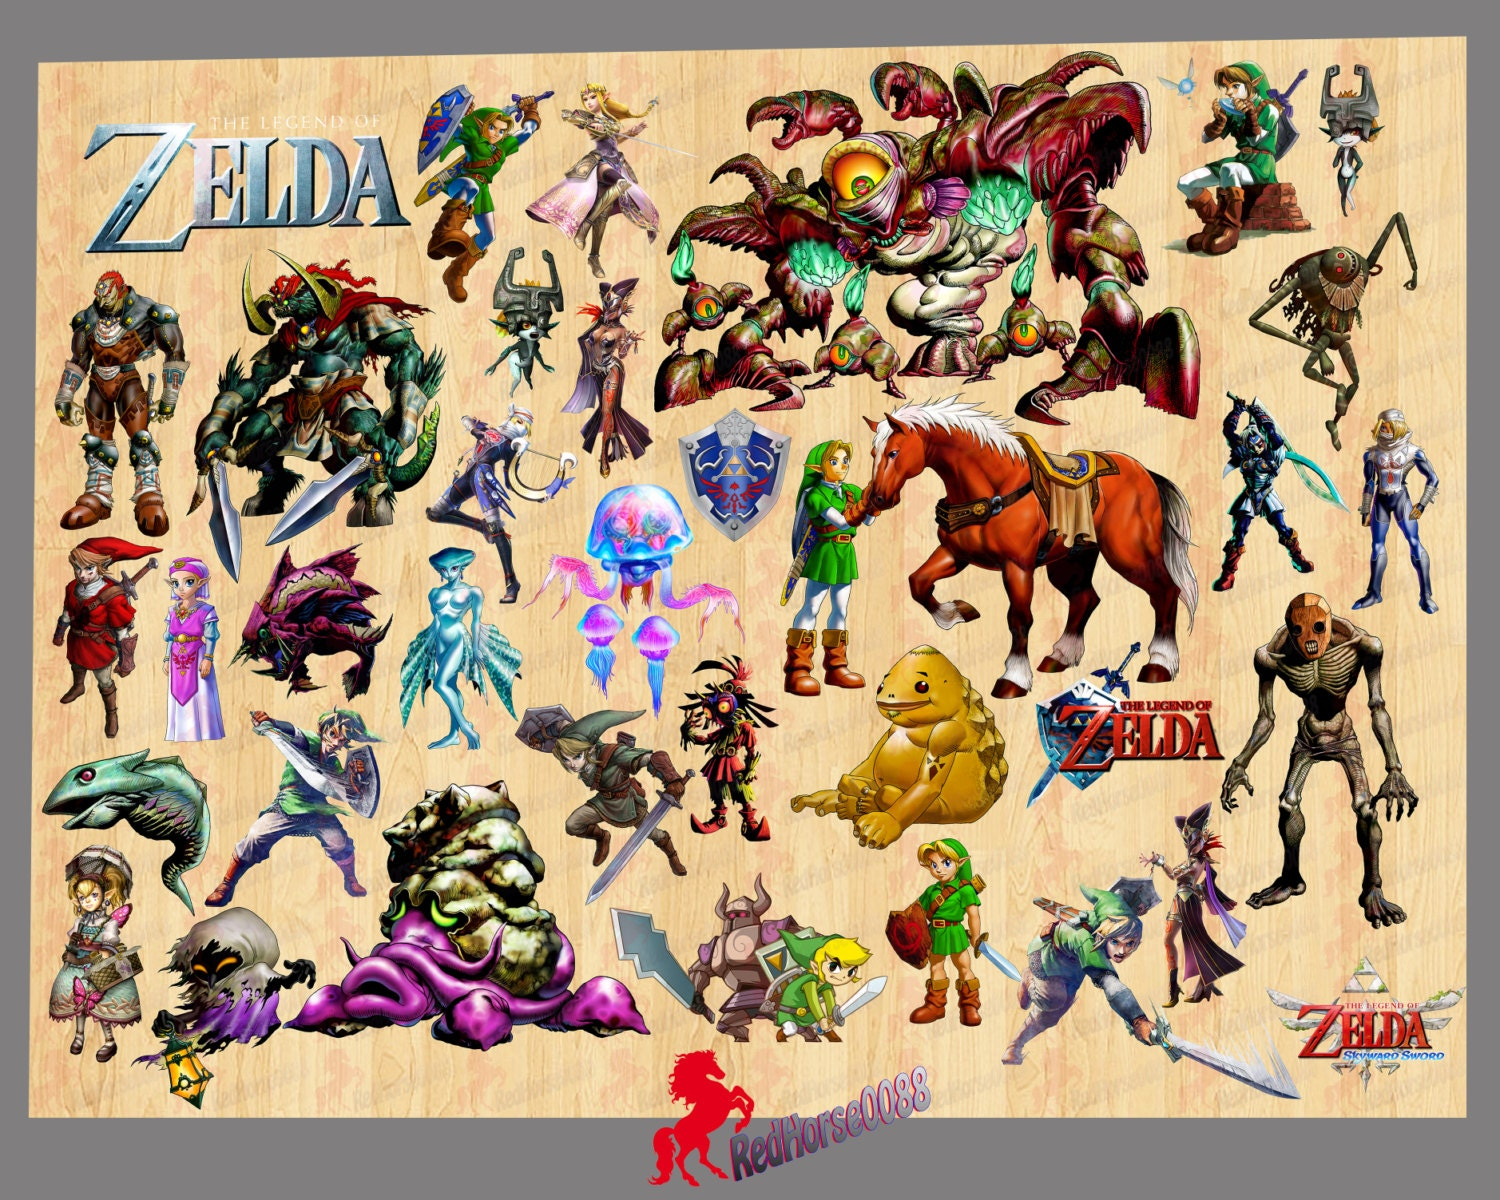 36 legends of zelda png images decorations clip by for Decoration zelda